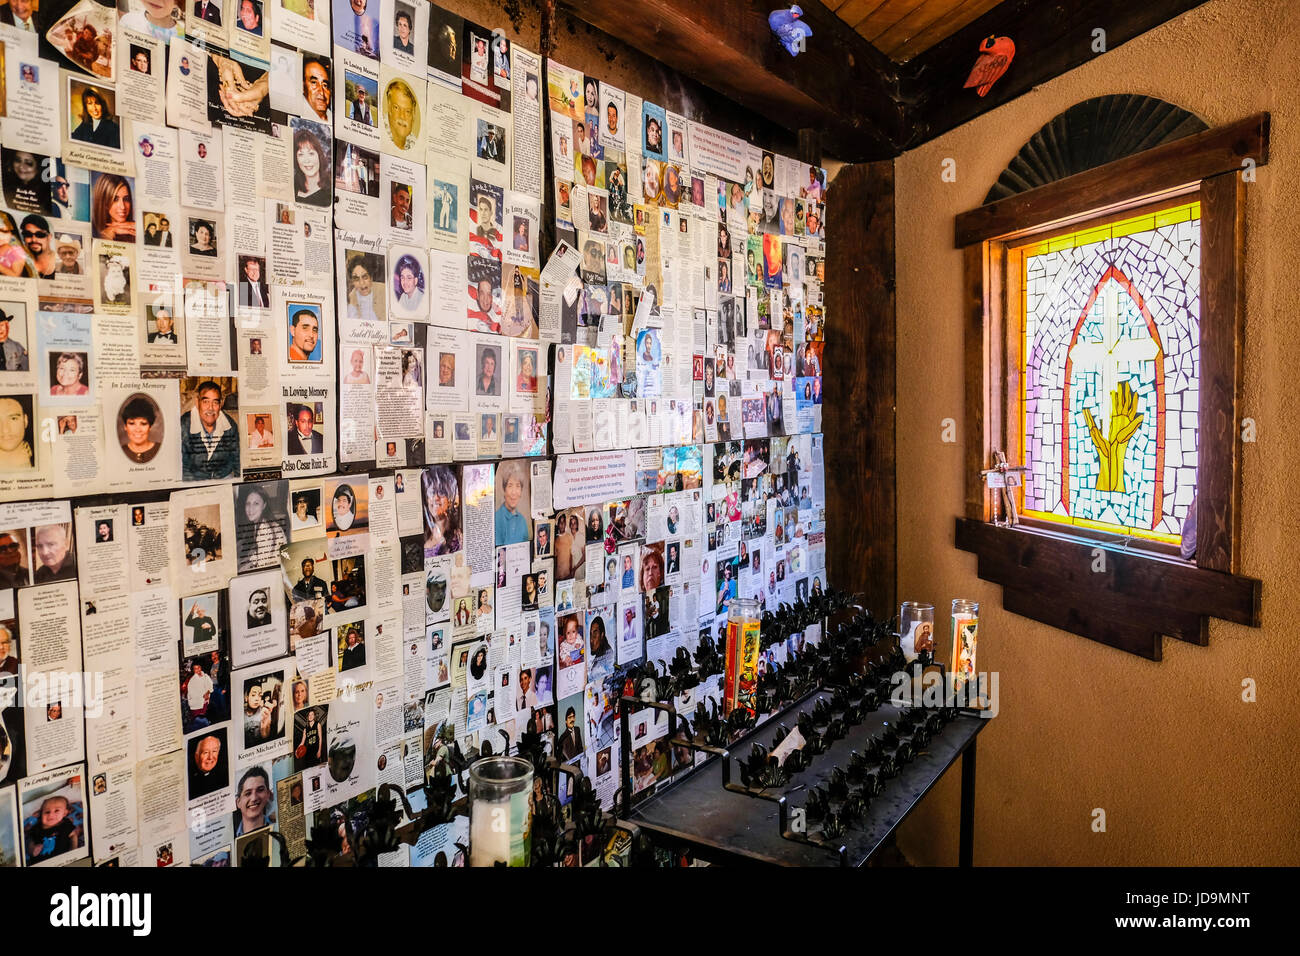 A shrine to pray for life and love, with family photos on the wall, in Chimayo, New Mexico, USA - Stock Image